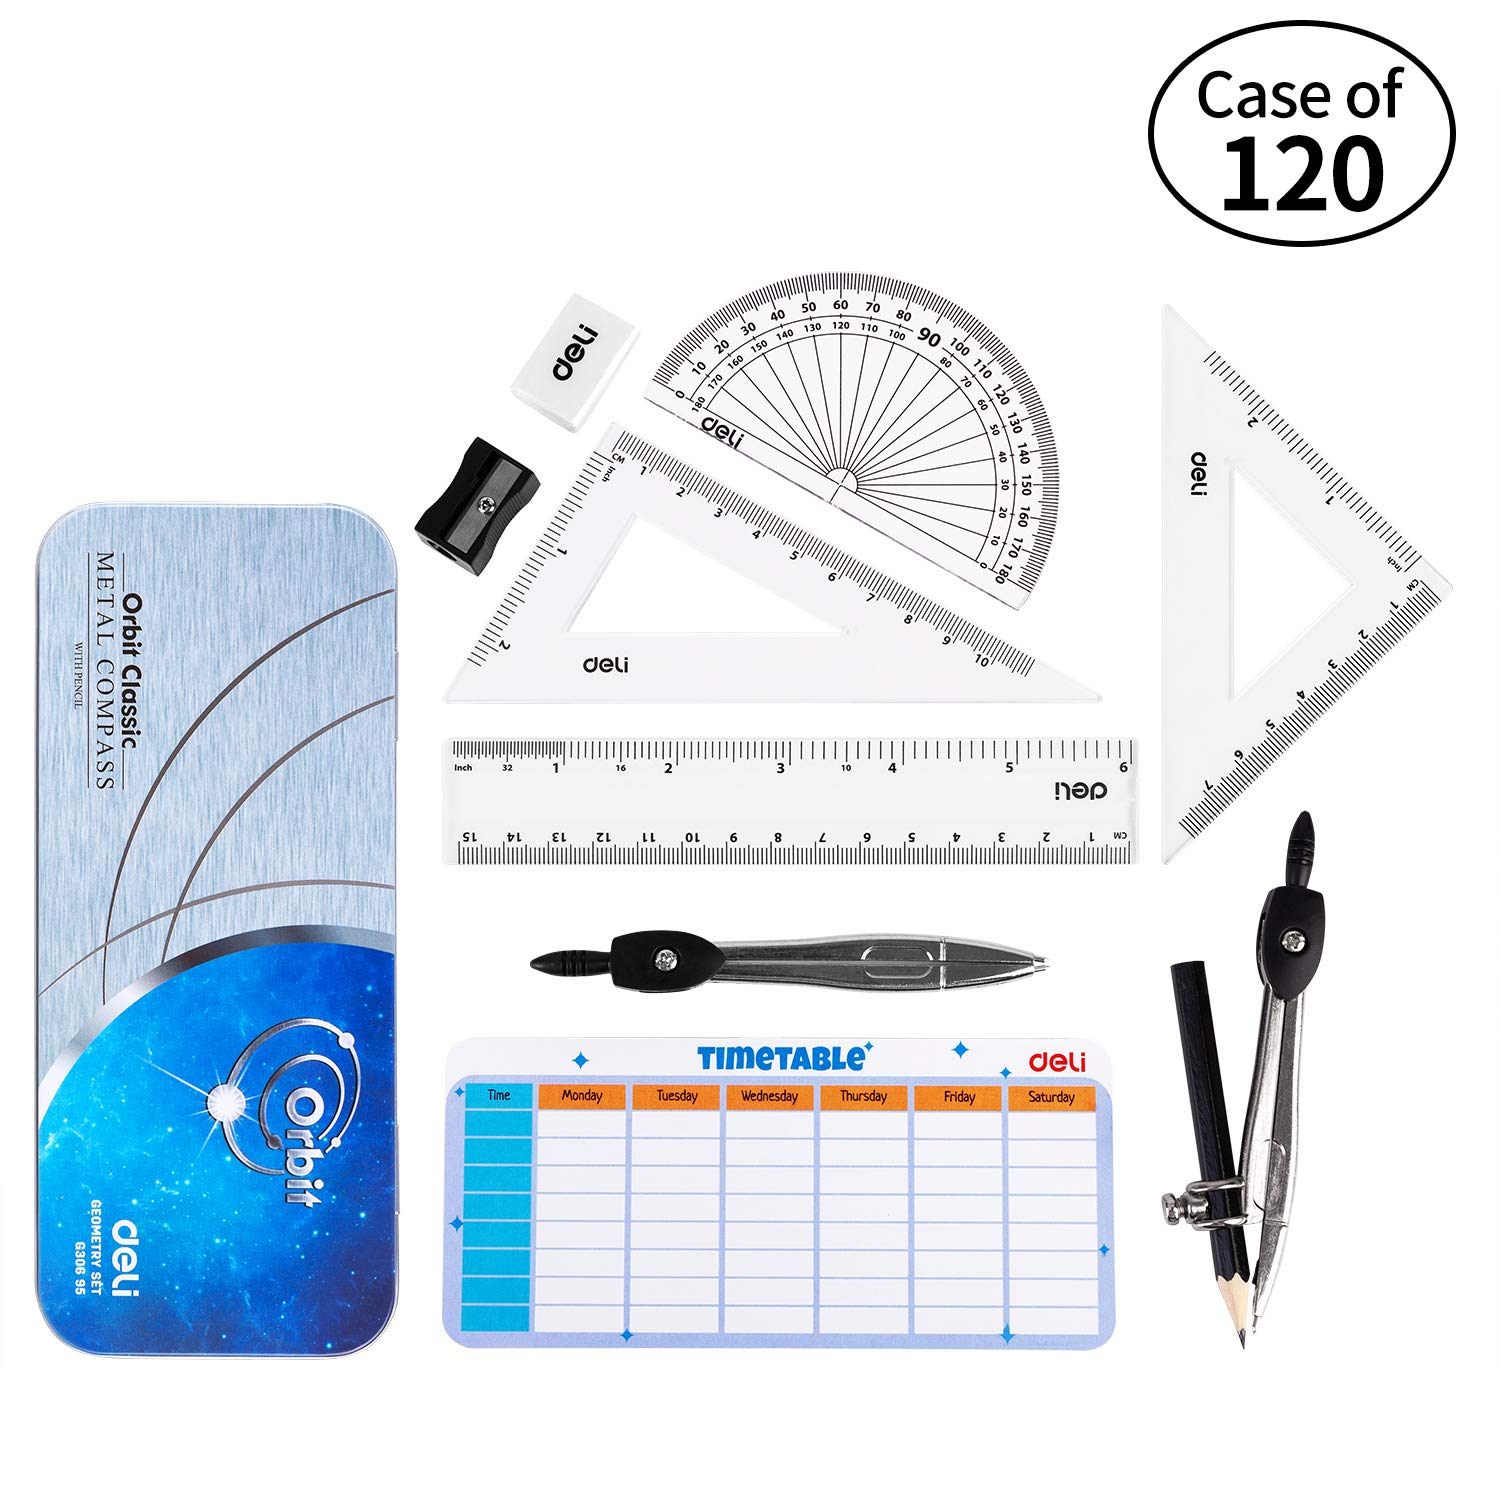 Case of 10 Packs, 12/Pack, Deli Math Geometry Kit Set 9 Pieces Student Supplies with Shatterproof Storage Box, Includes Rulers, Protractor, Compass, Pencil Sharpener, Pencil, Eraser by deli